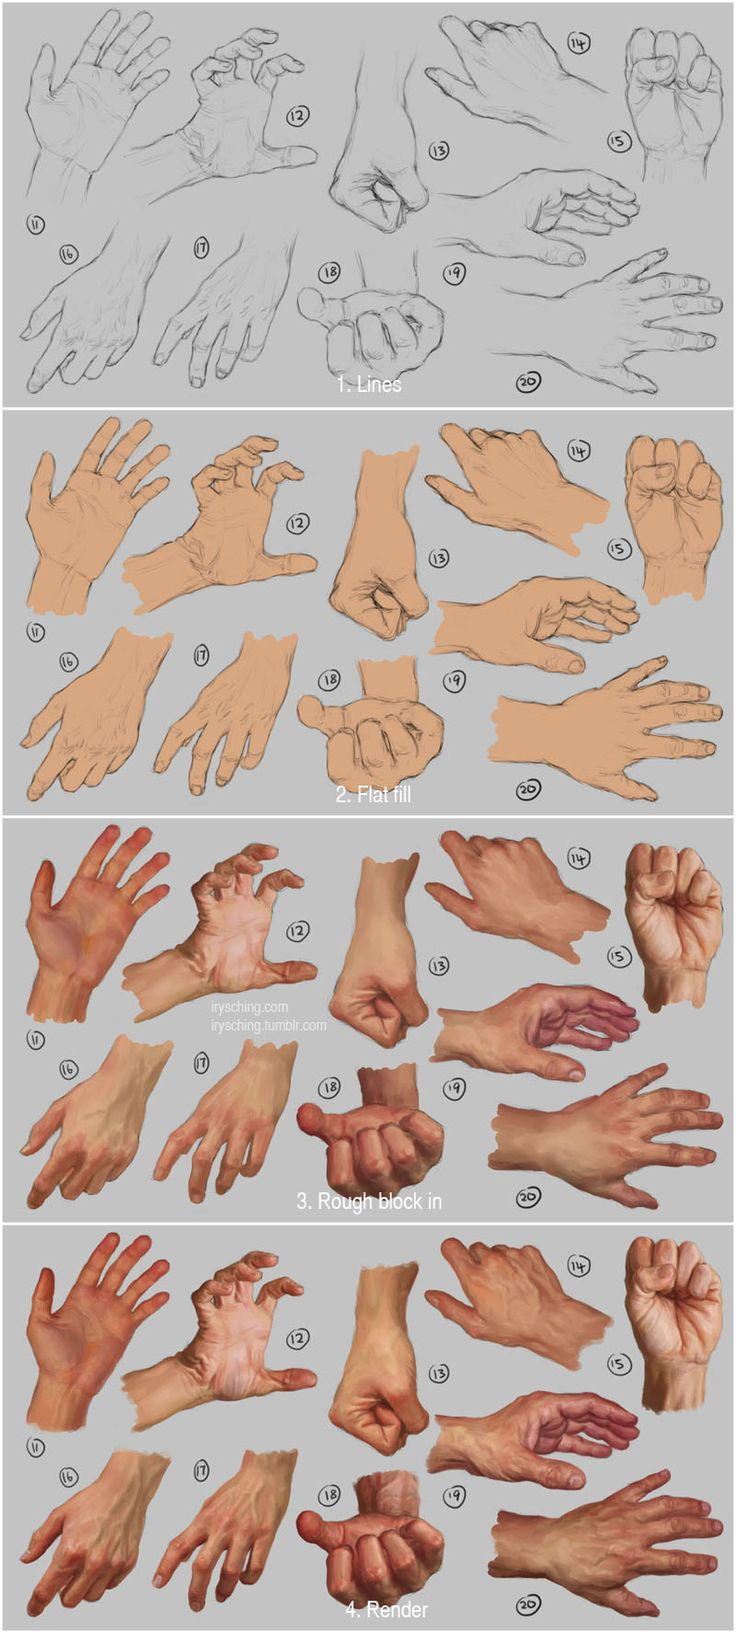 "art-tutorials-collection: "" Hand study 2 - Steps by irysching """